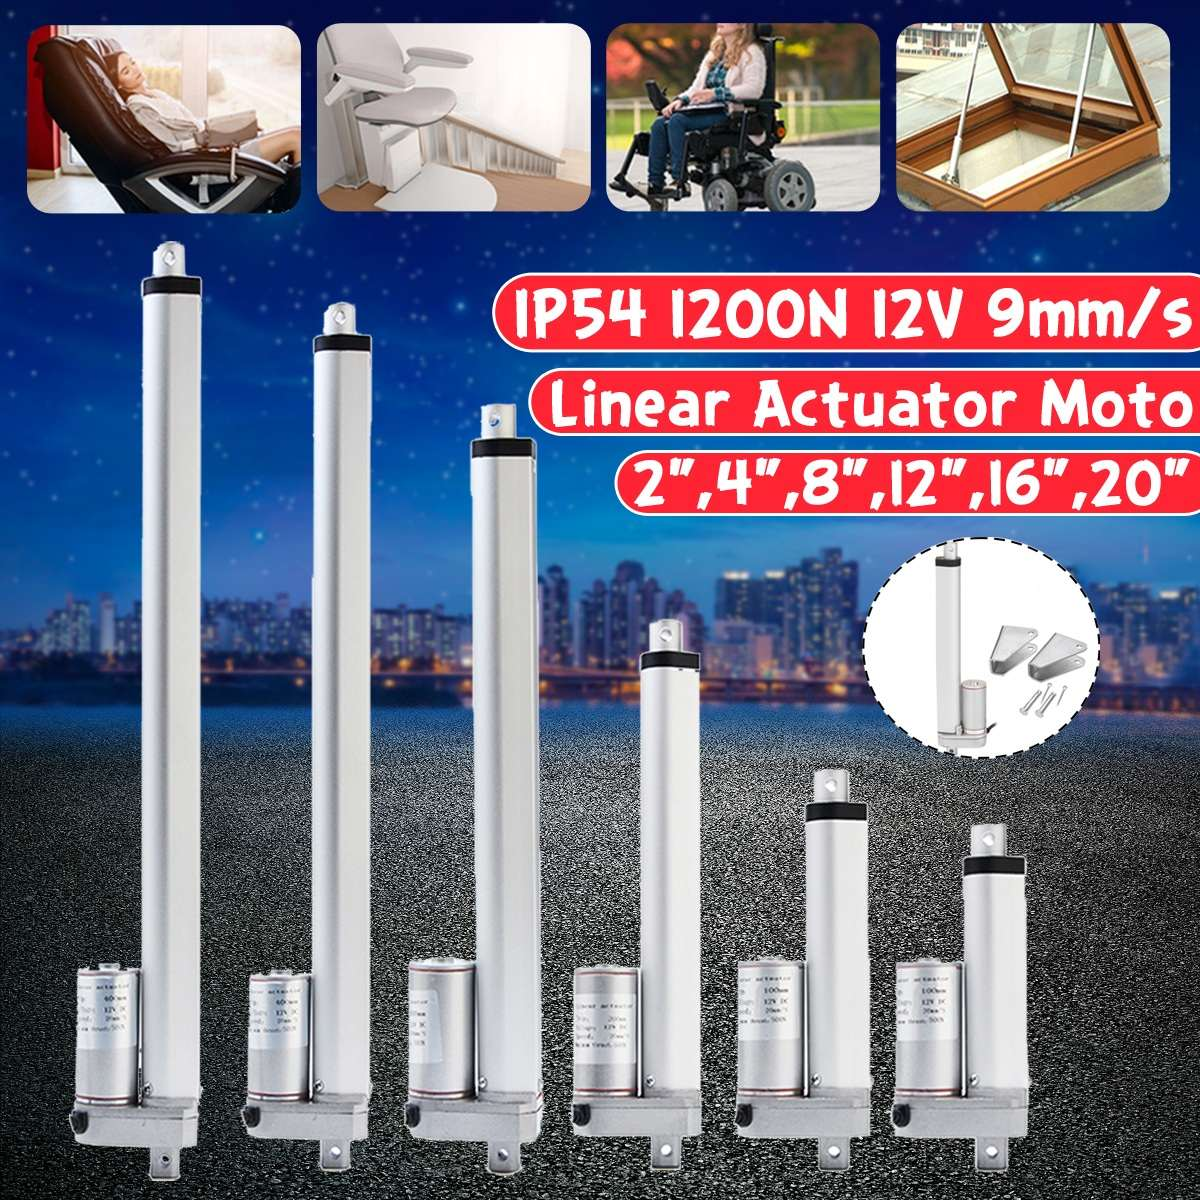 IP54 1200N 12V 9mm/s Small DC Electric Push Rod White Material Aluminum Alloy  For Electric Self Unicycle Scooter Input VoltageIP54 1200N 12V 9mm/s Small DC Electric Push Rod White Material Aluminum Alloy  For Electric Self Unicycle Scooter Input Voltage